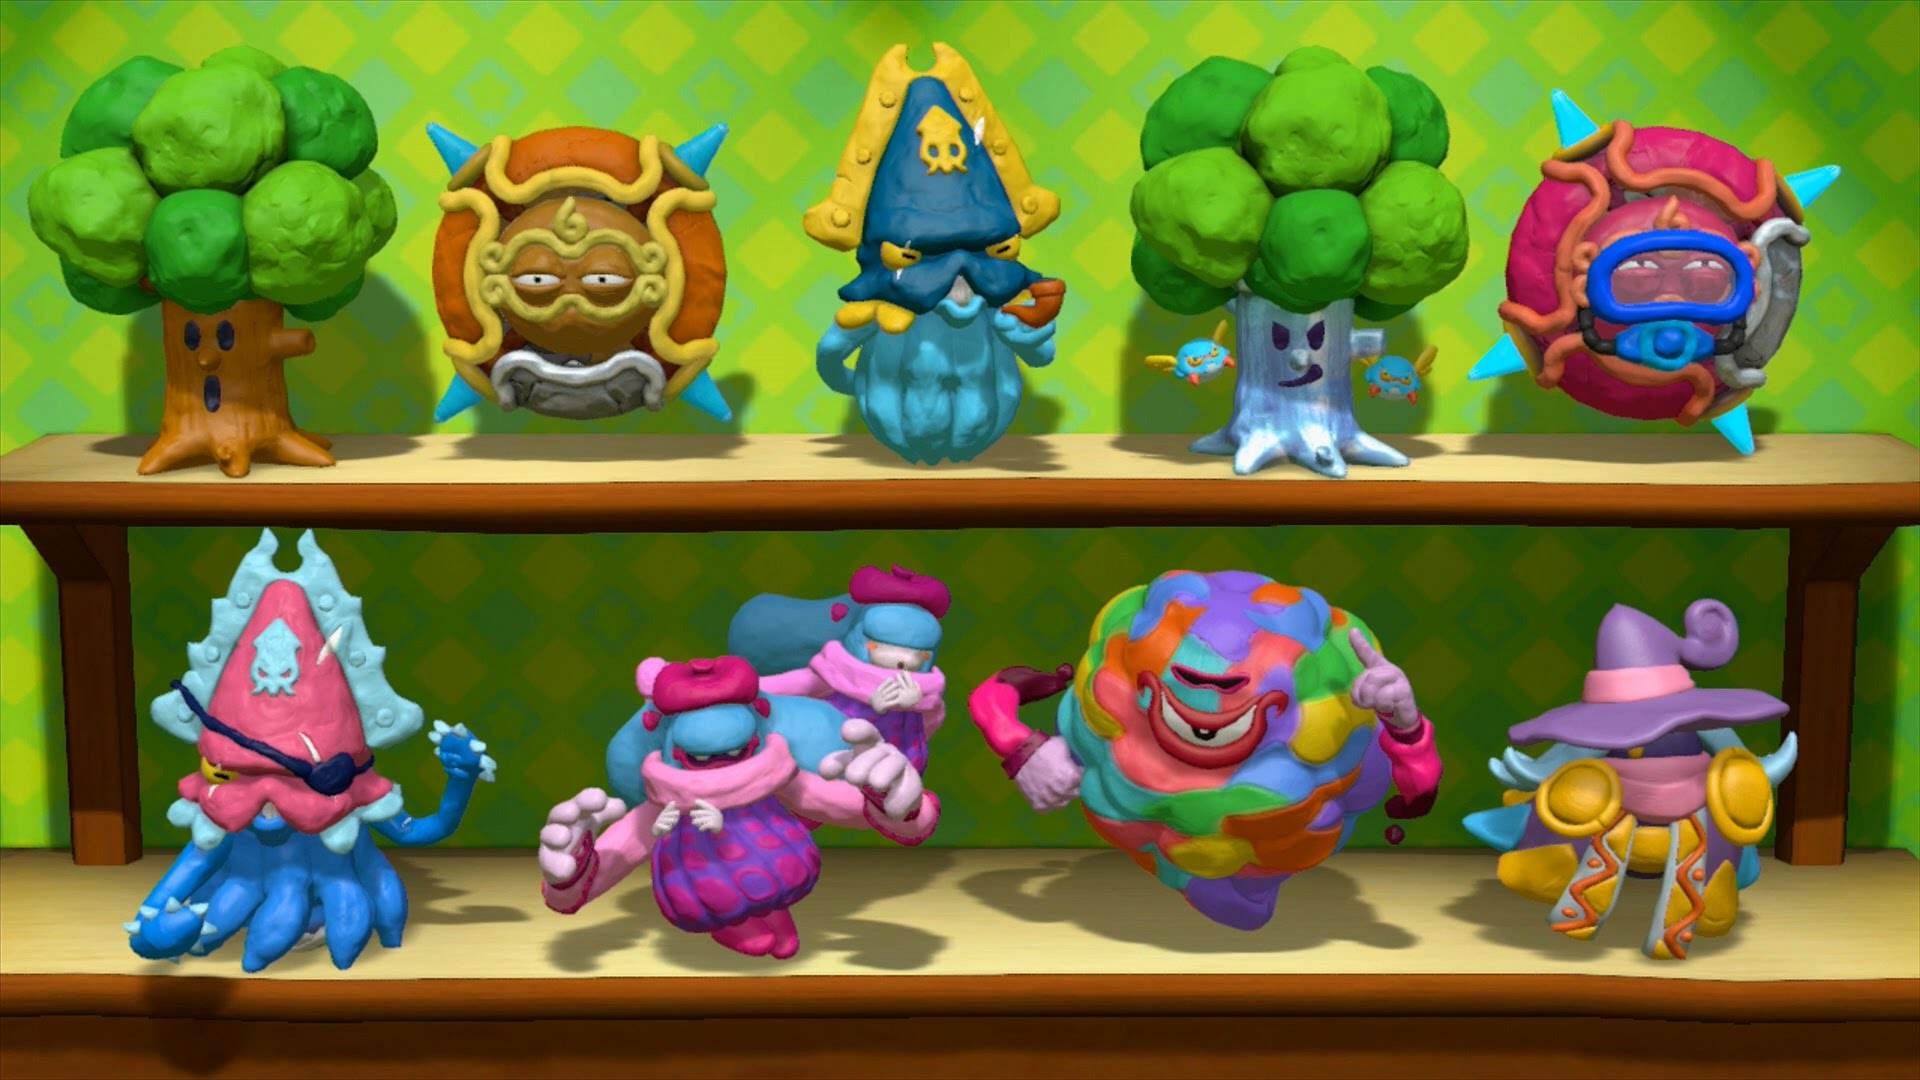 Kirby And The Rainbow Curse Backgrounds on Wallpapers Vista